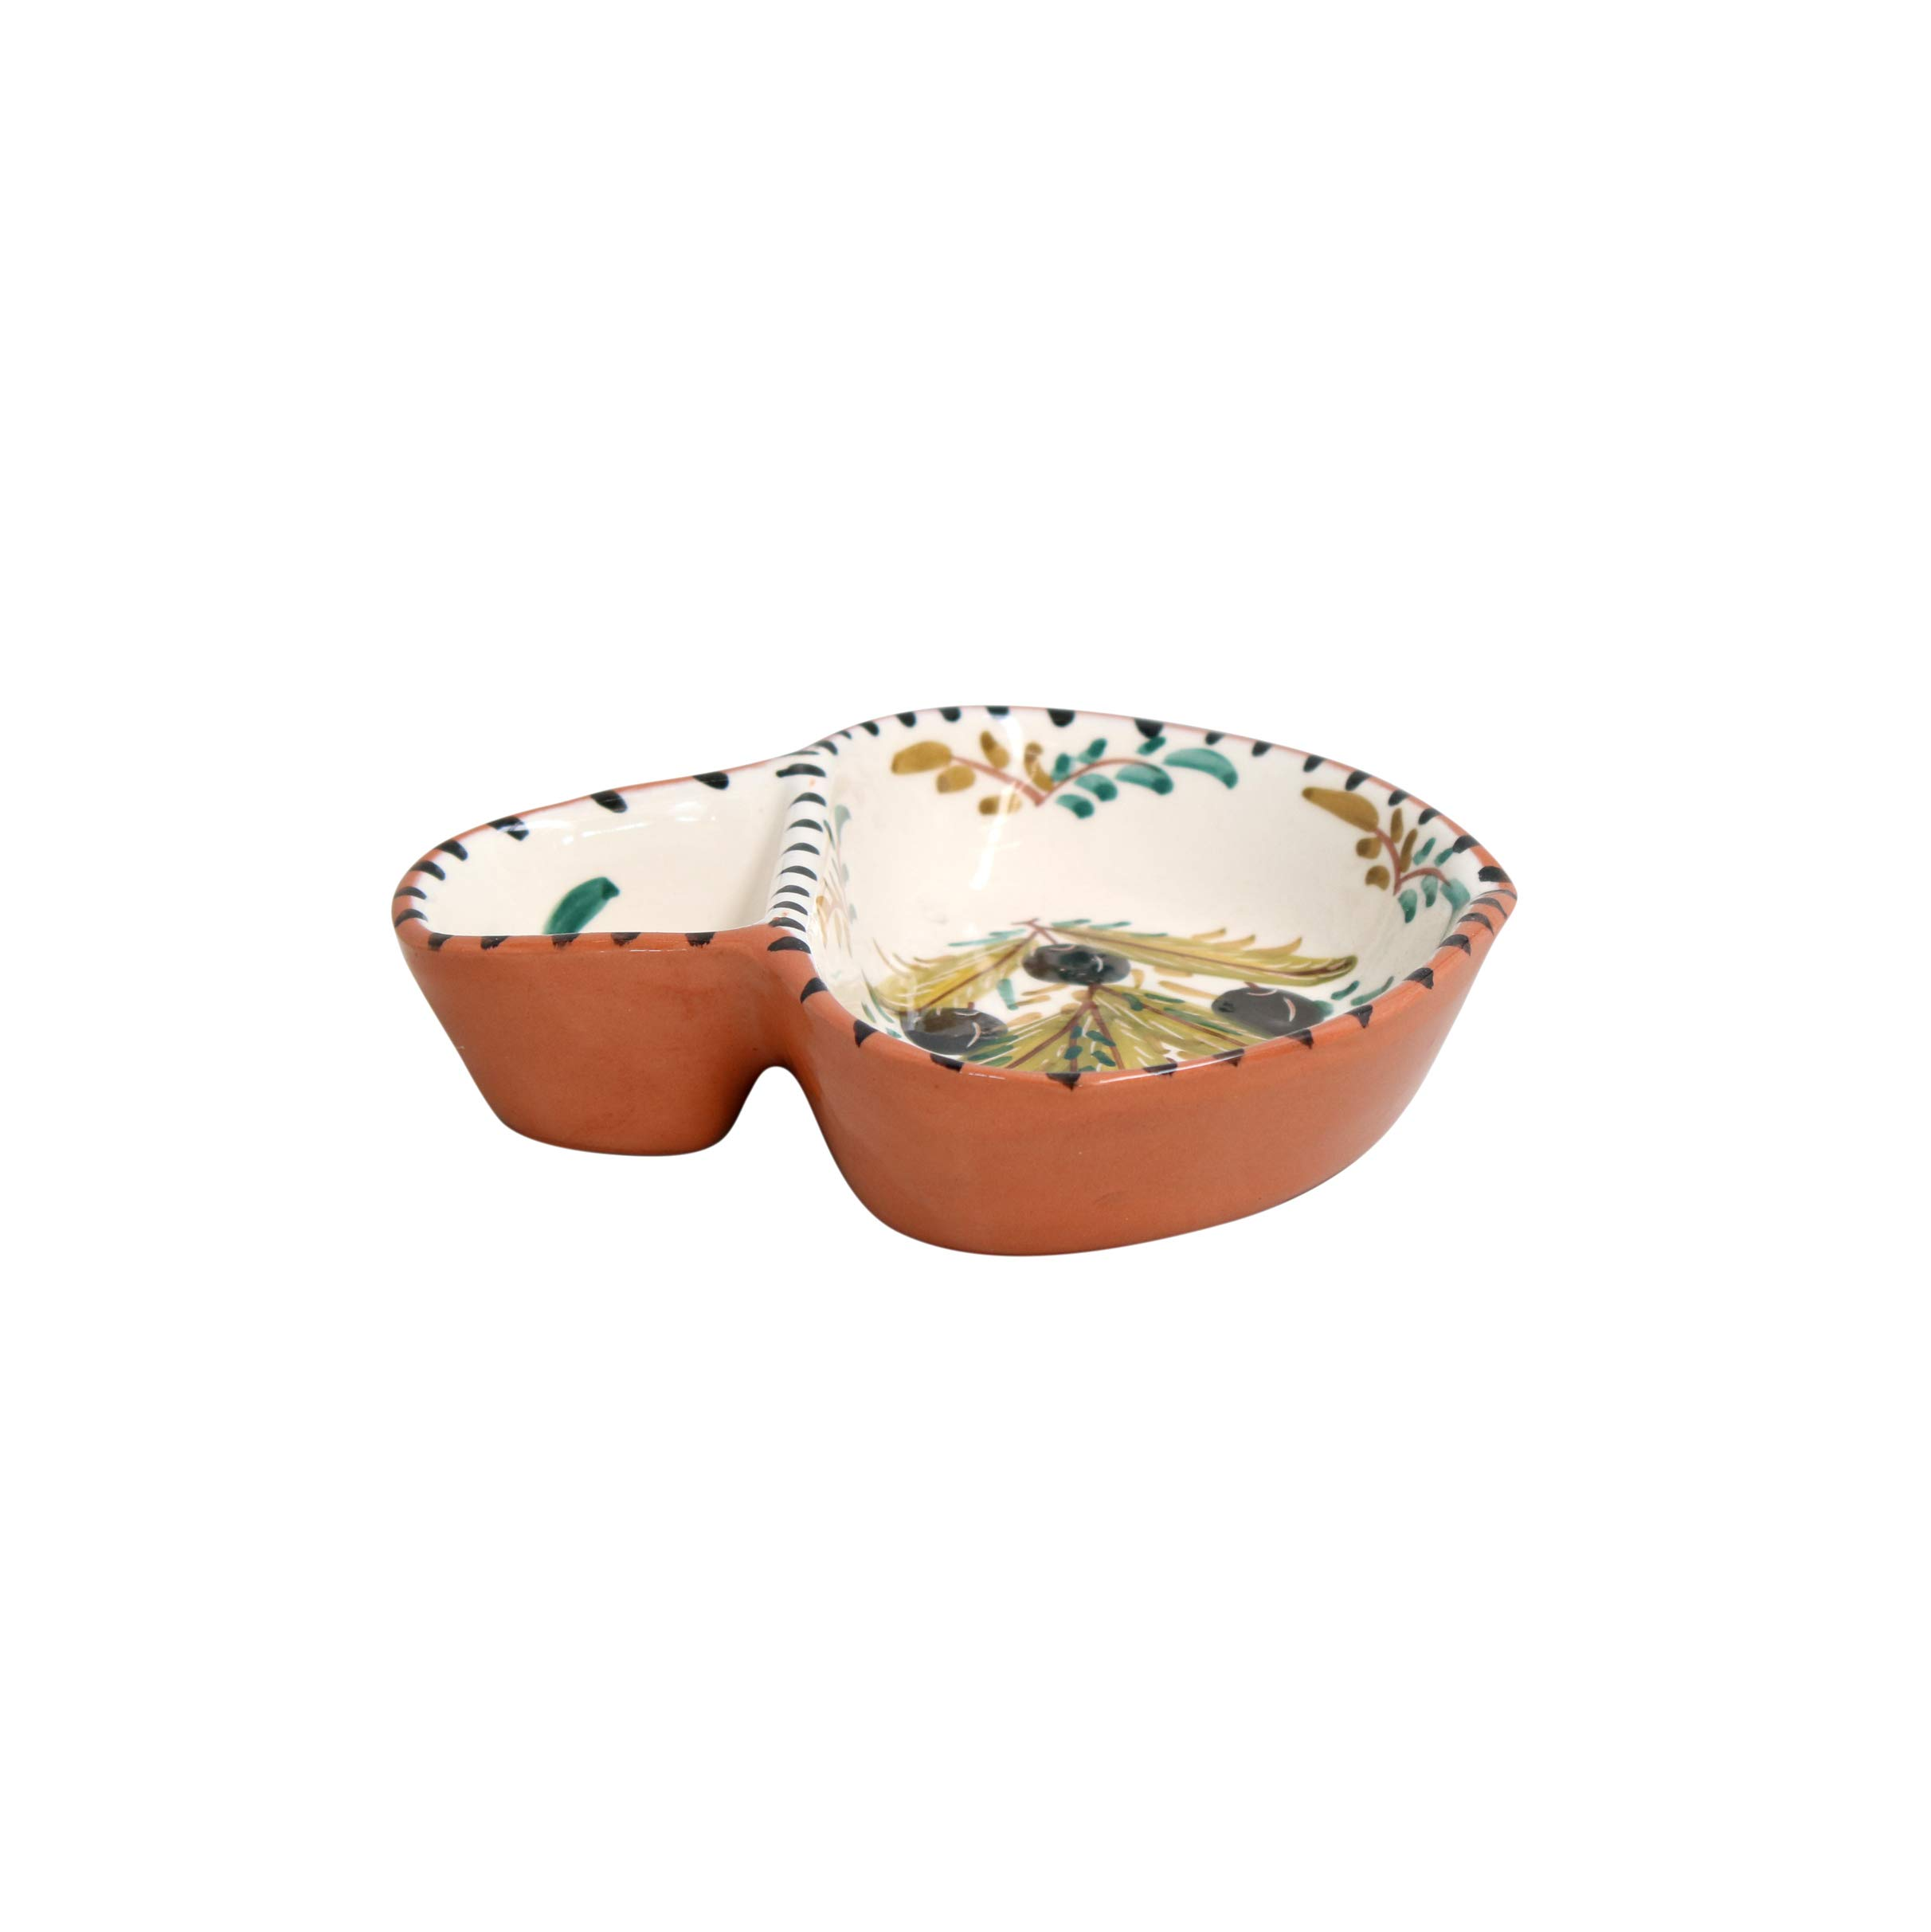 Casafina Alentejo Terracotta Collection Stoneware Ceramic Hand Painted Olive Dish (Large 6.5'')